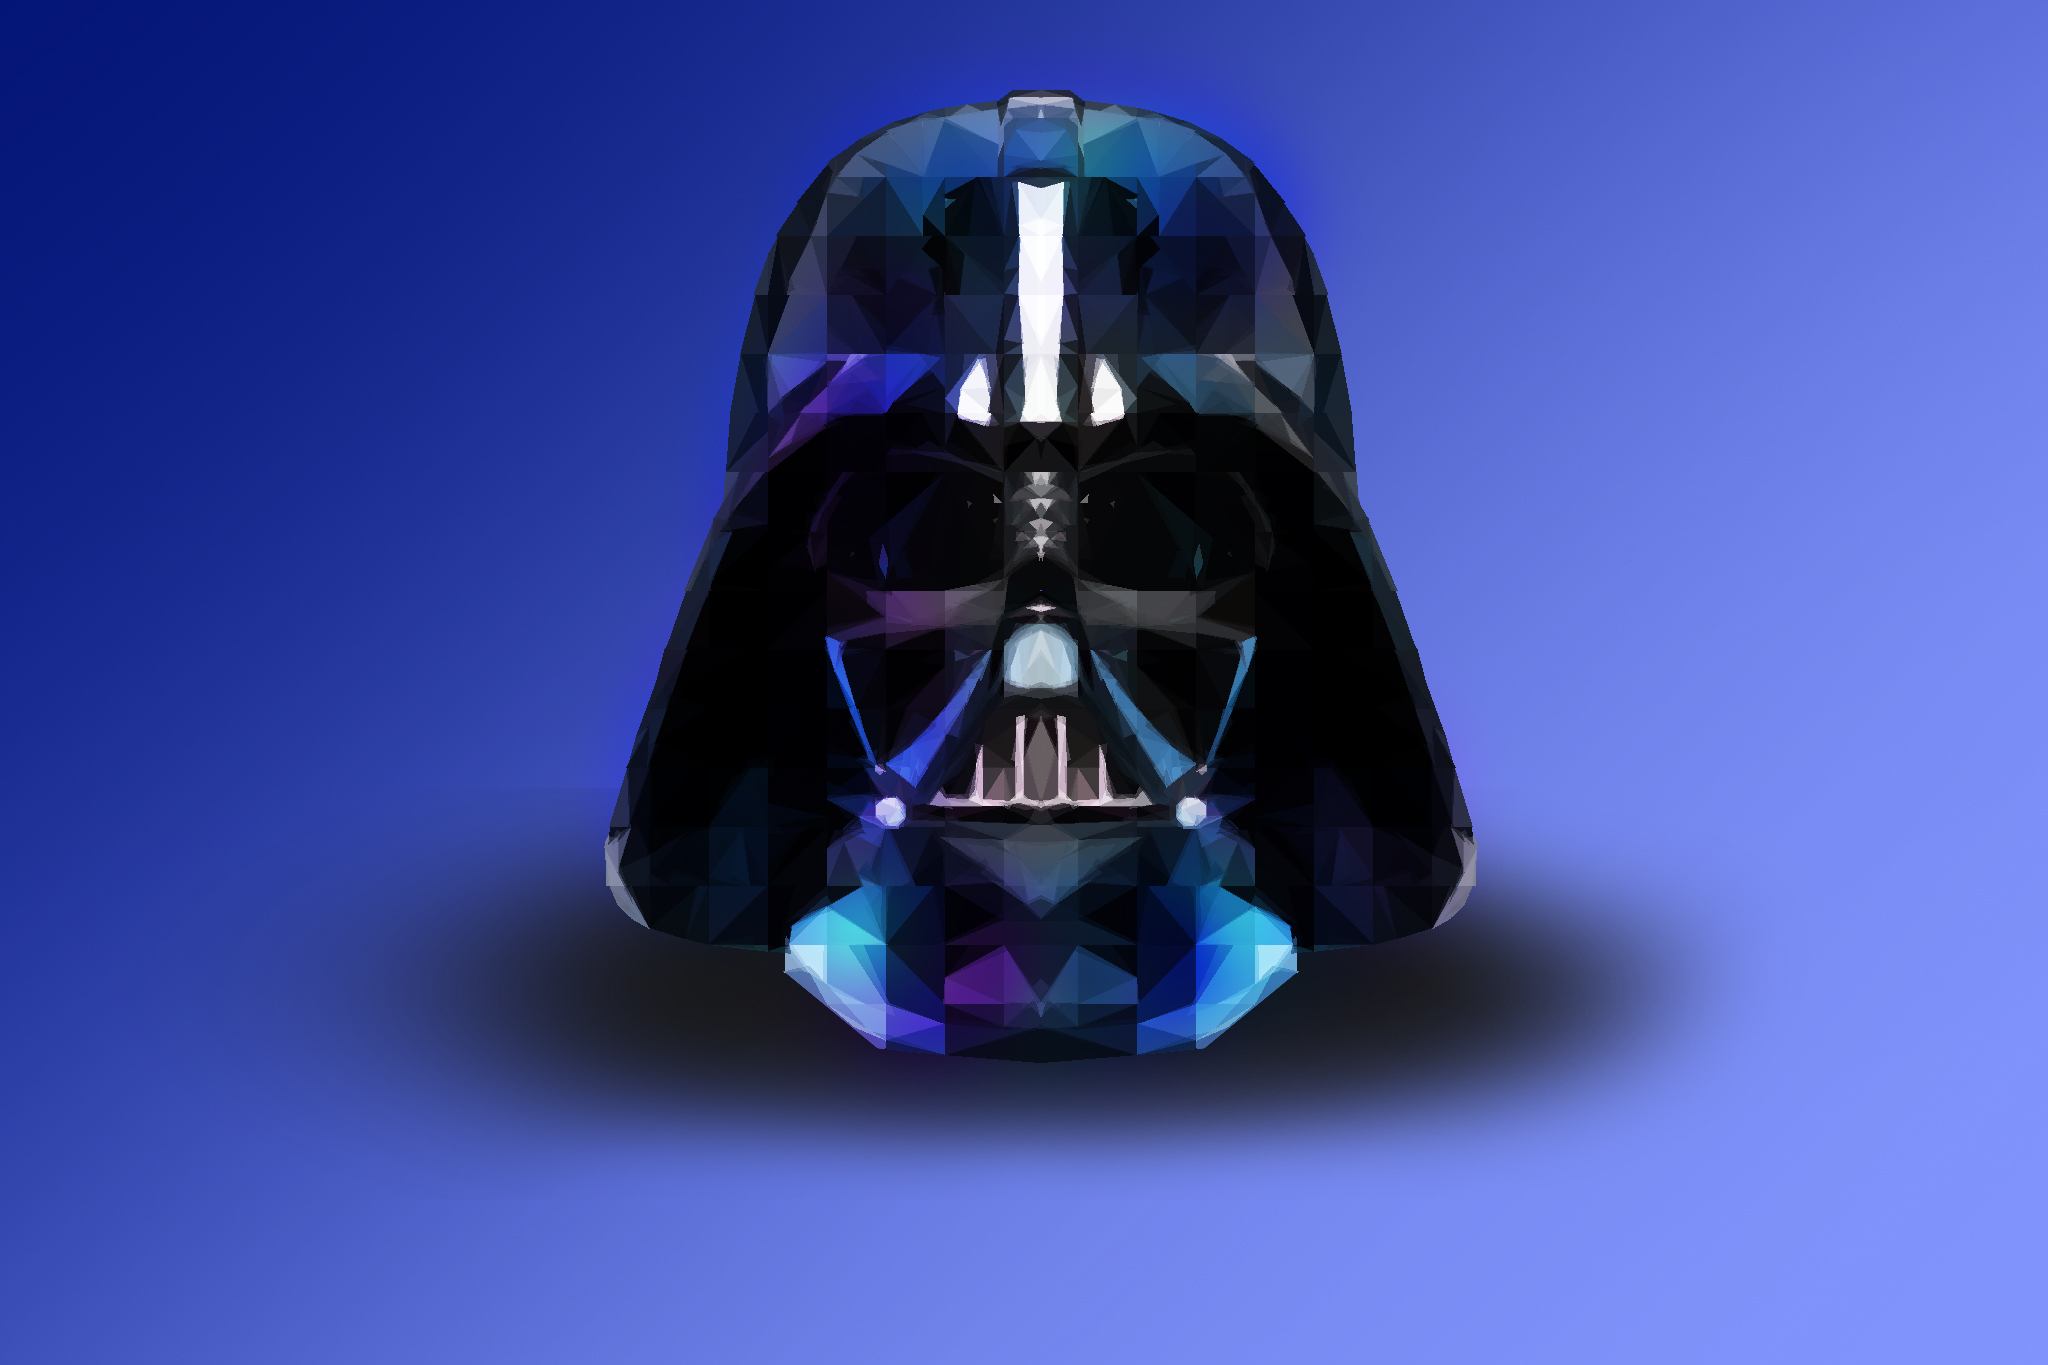 Darth Vader Star Wars Abstract Hd Artist 4k Wallpapers Images Backgrounds Photos And Pictures